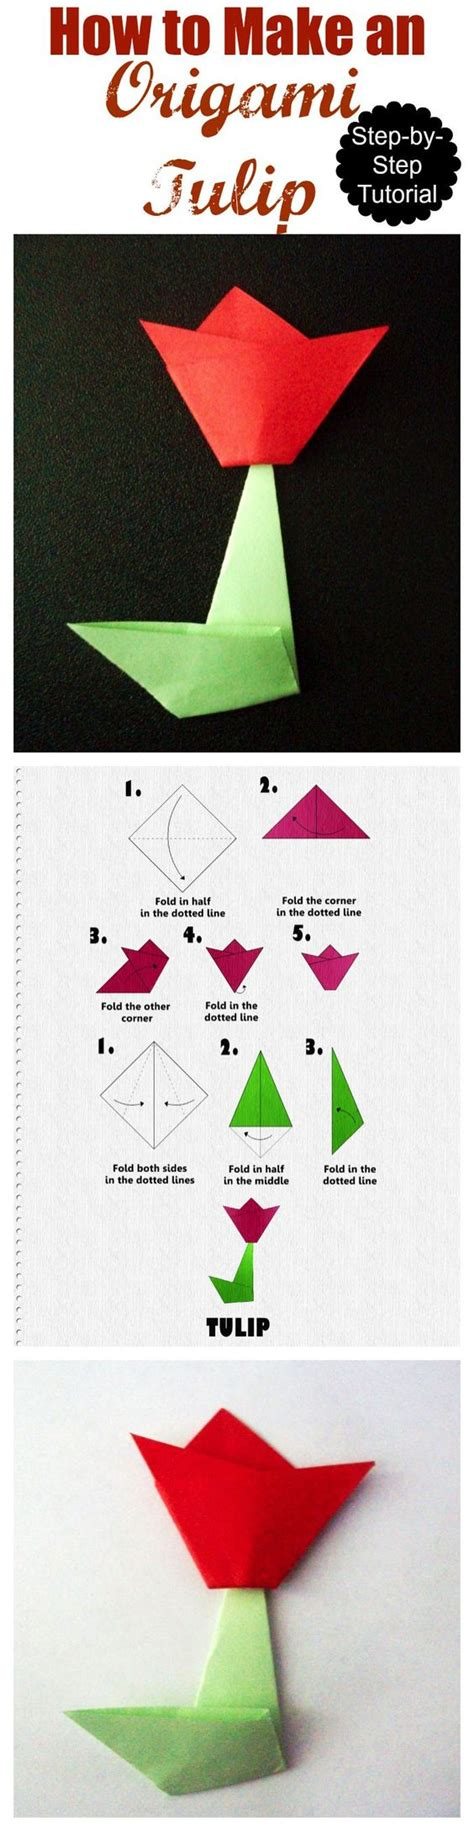 Origami Tulip Step By Step - how to make an origami tulip step by step tutorial